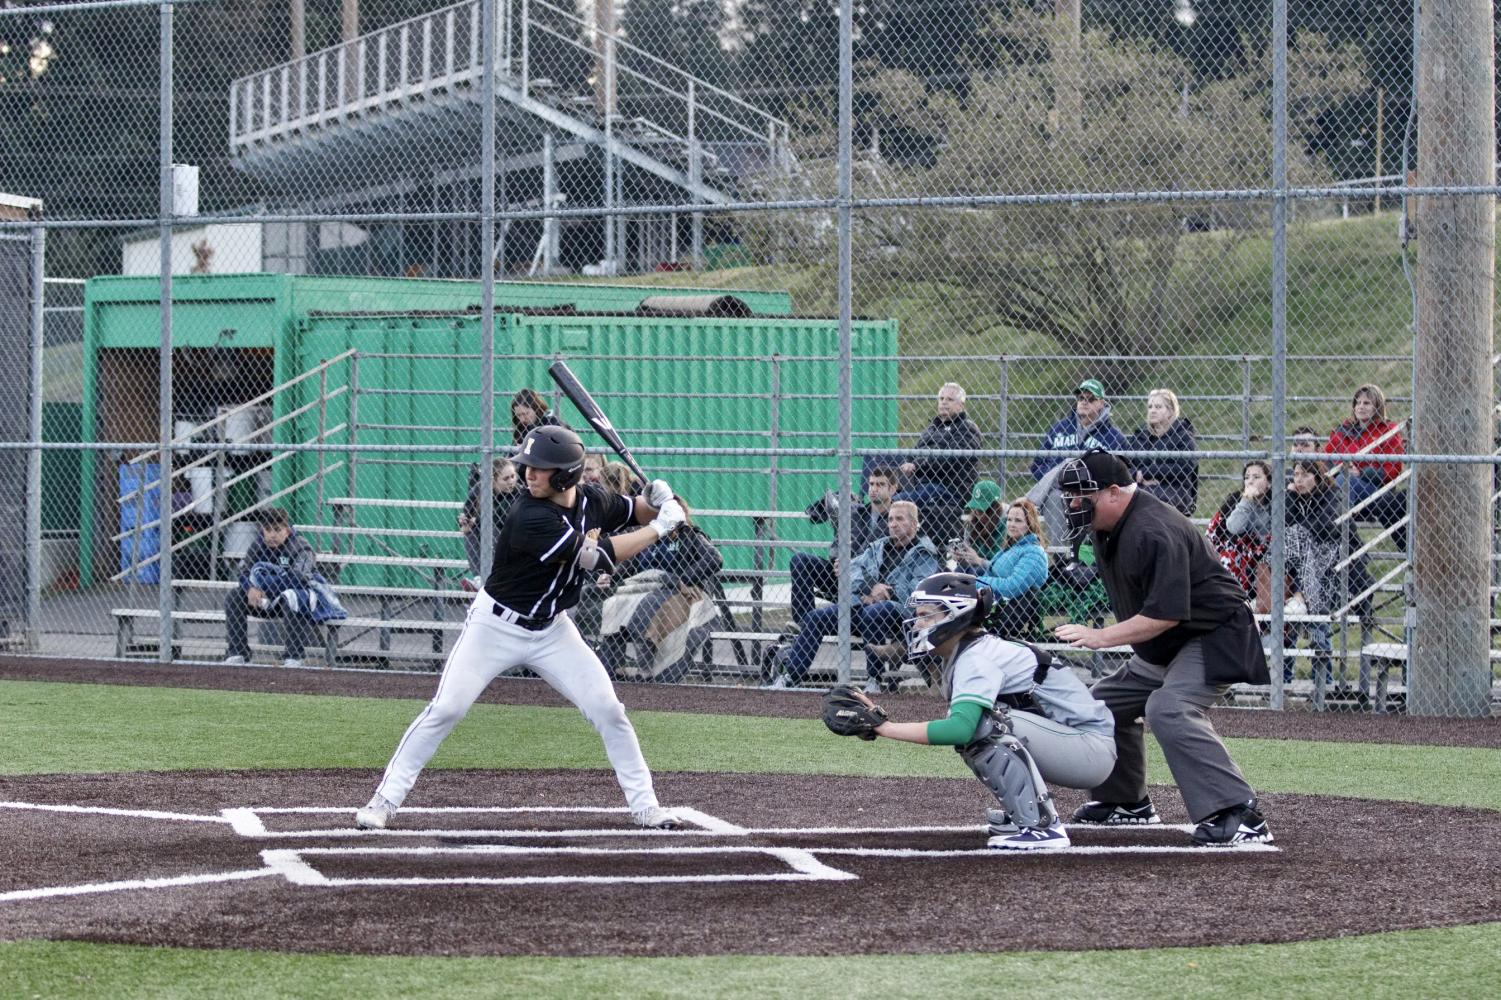 Senior Sean Mulcare stands at the plate against Woodinville on April 1st. The Vikings went on to win 5-0, the sixth win in a string of eight straight.